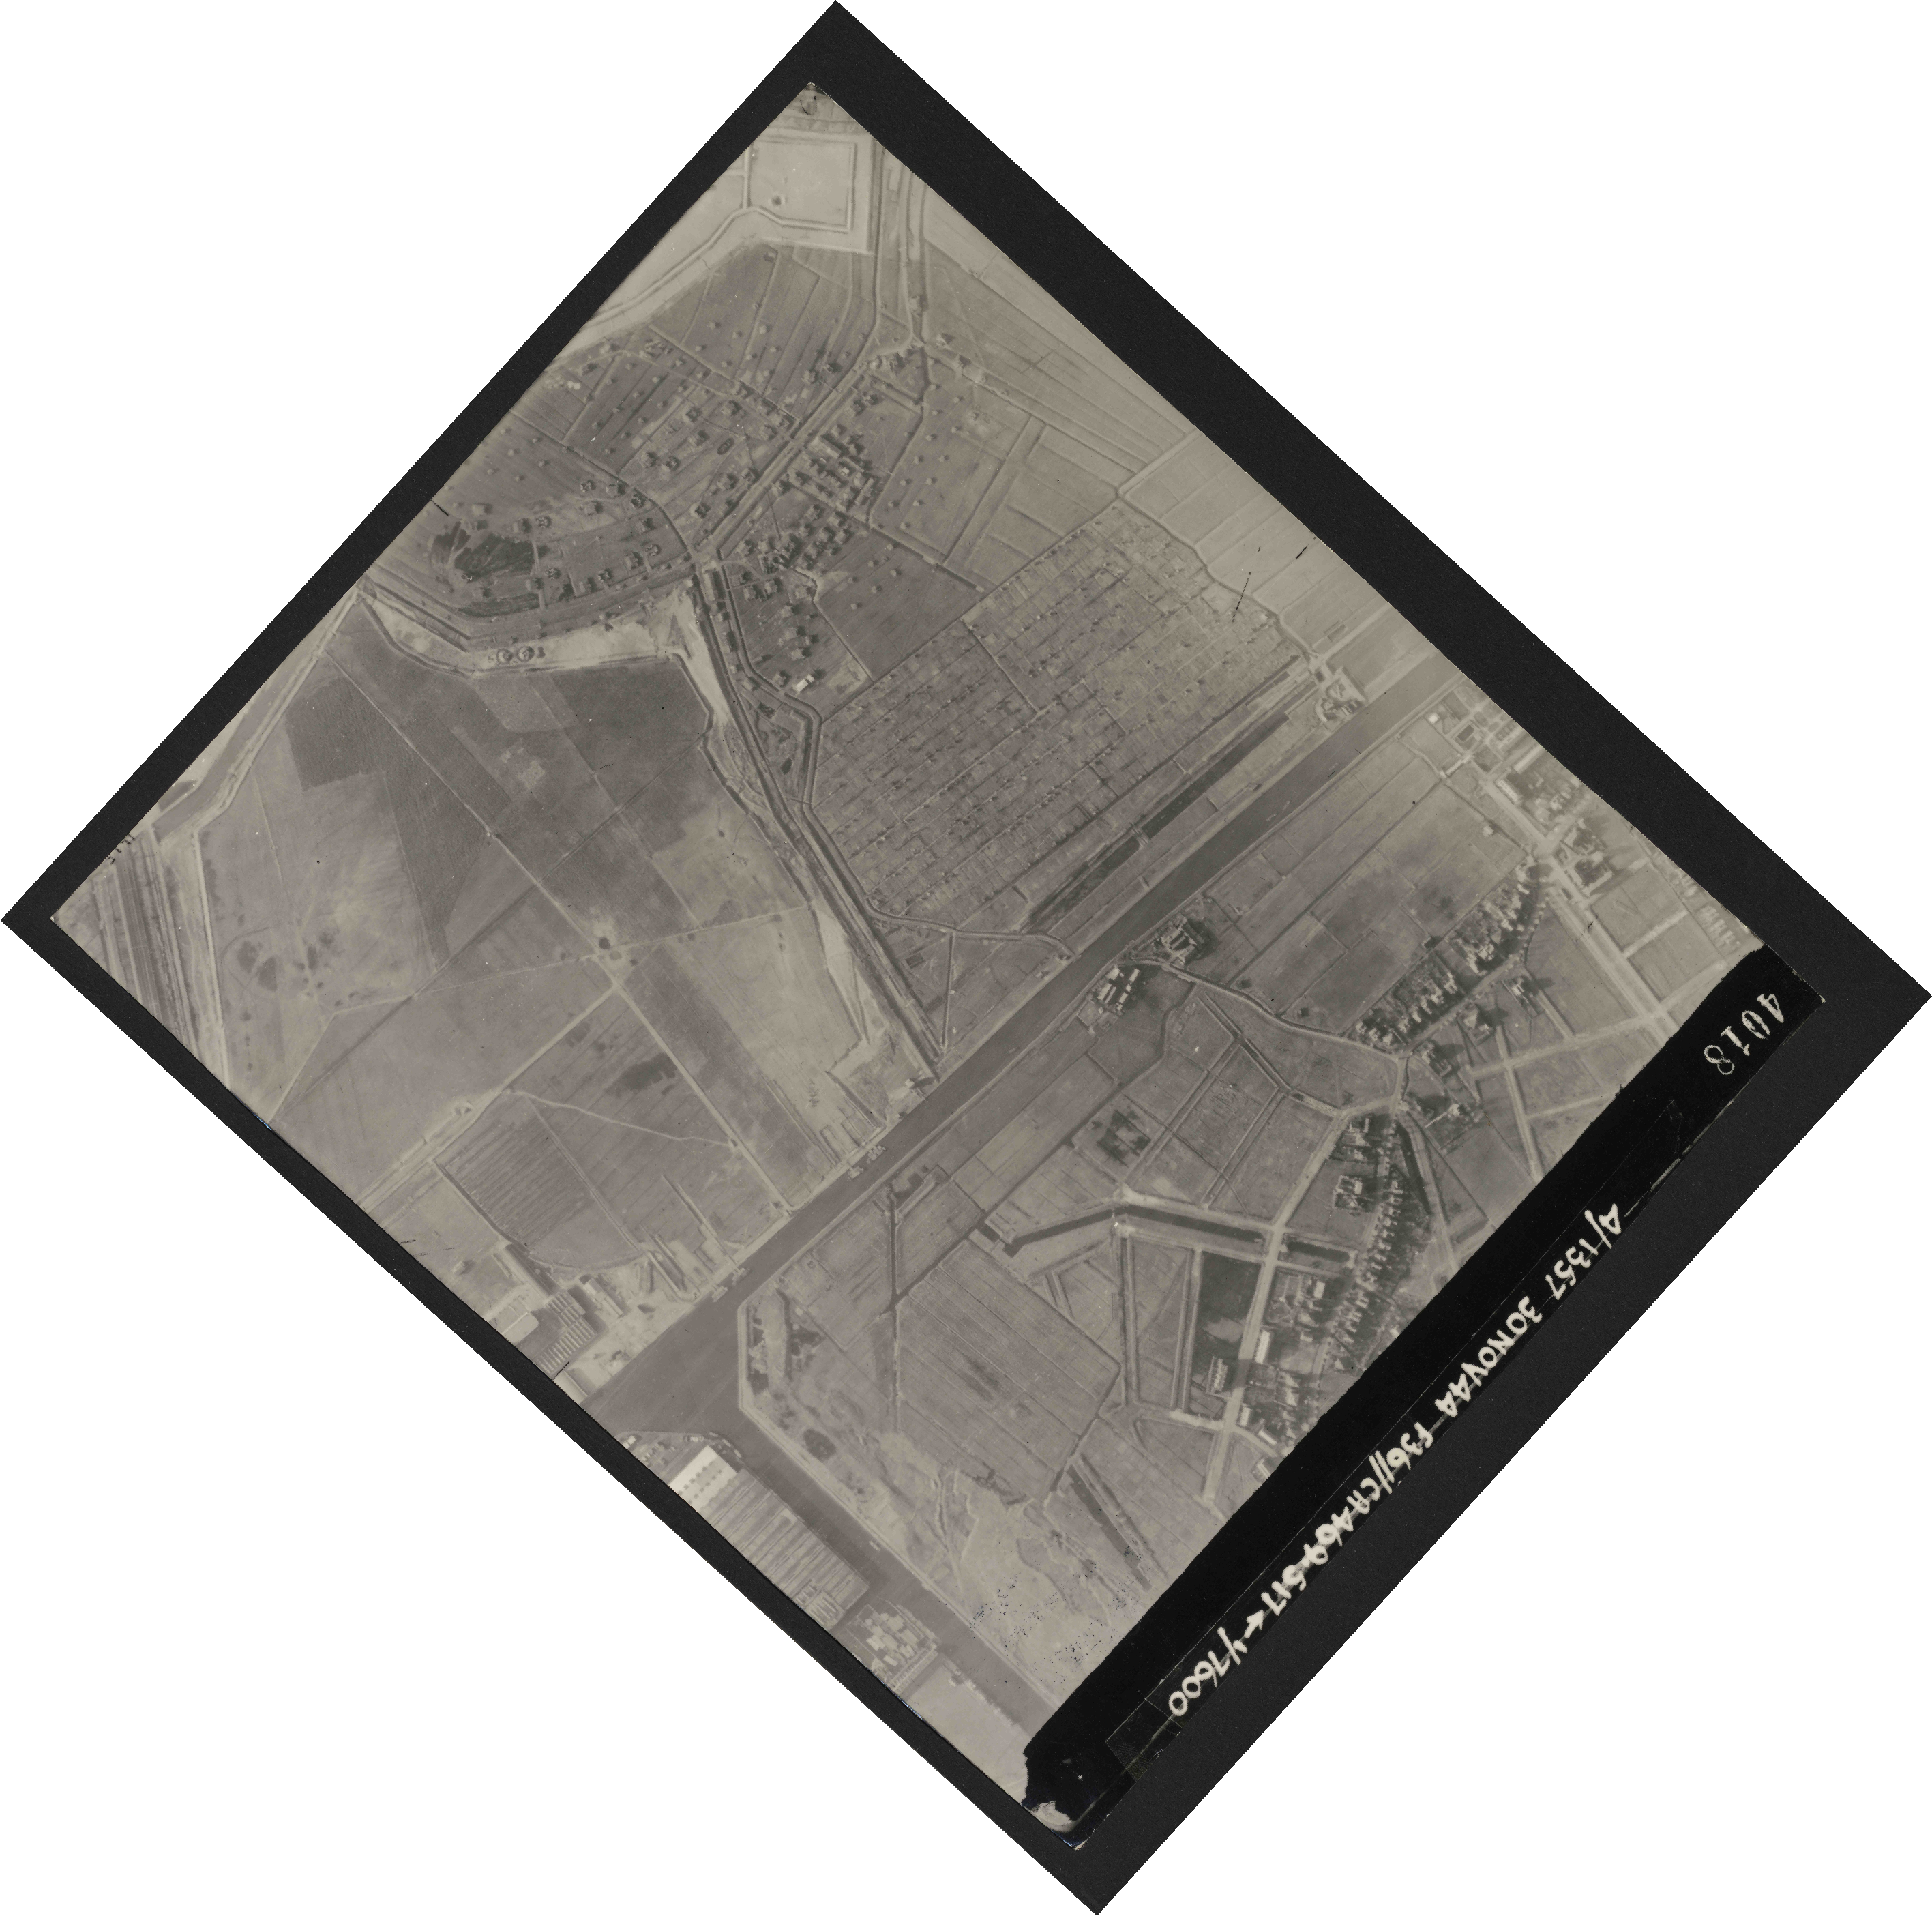 Collection RAF aerial photos 1940-1945 - flight 259, run 02, photo 4018